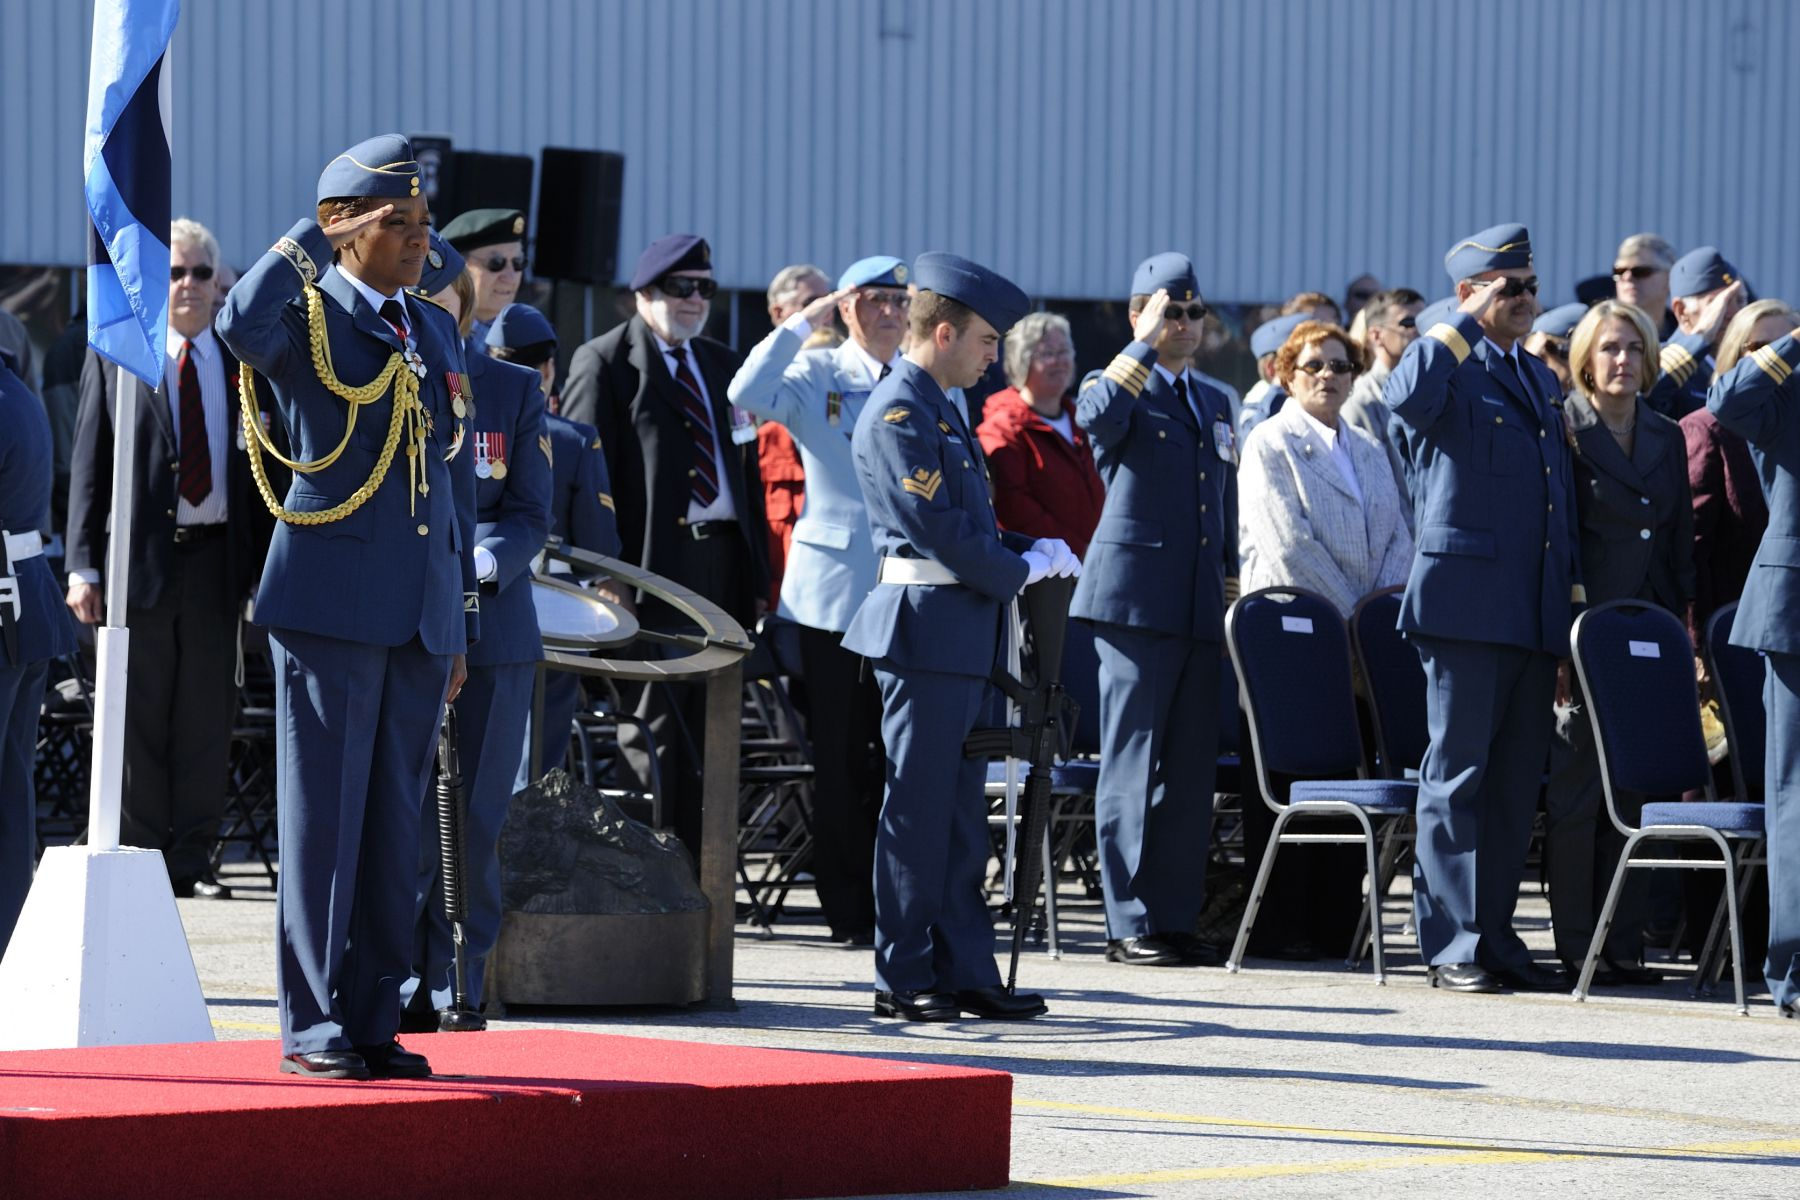 The Governor General and Commander-in-Chief of Canada took part in the ceremony marking the 70th anniversary of the Battle of Britain at the Canada Aviation and Space Museum.